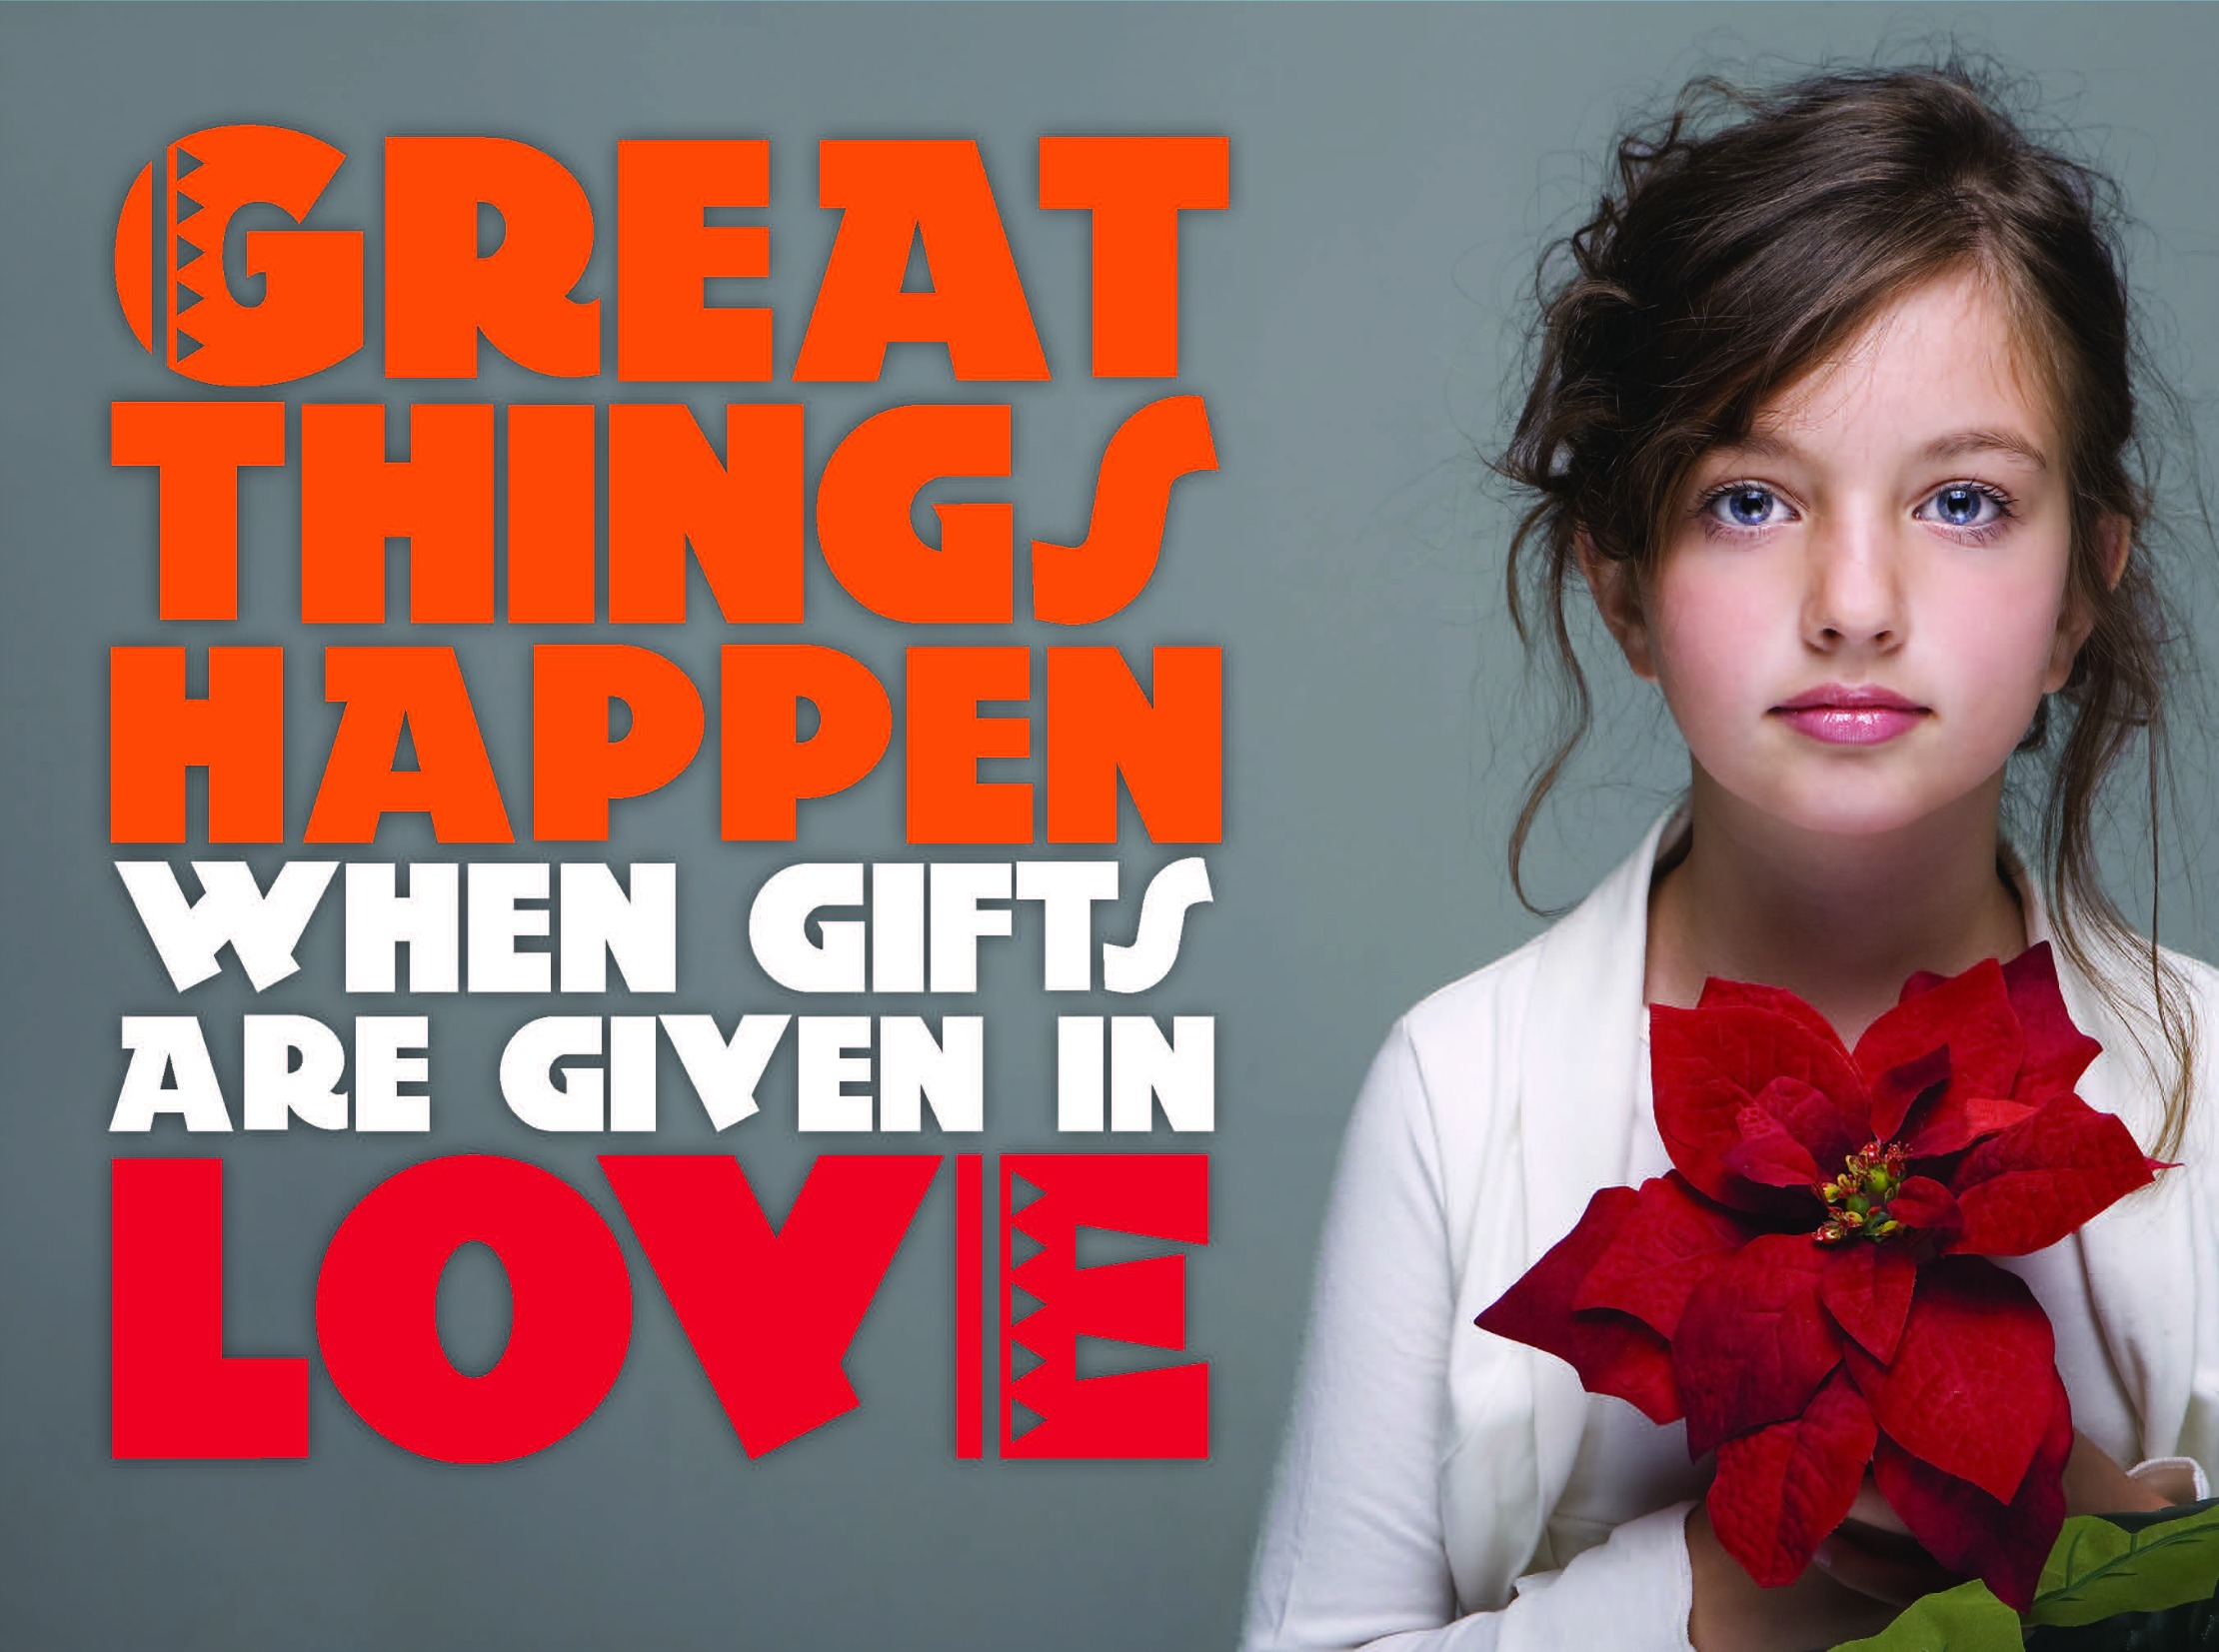 Gifts Given in Love